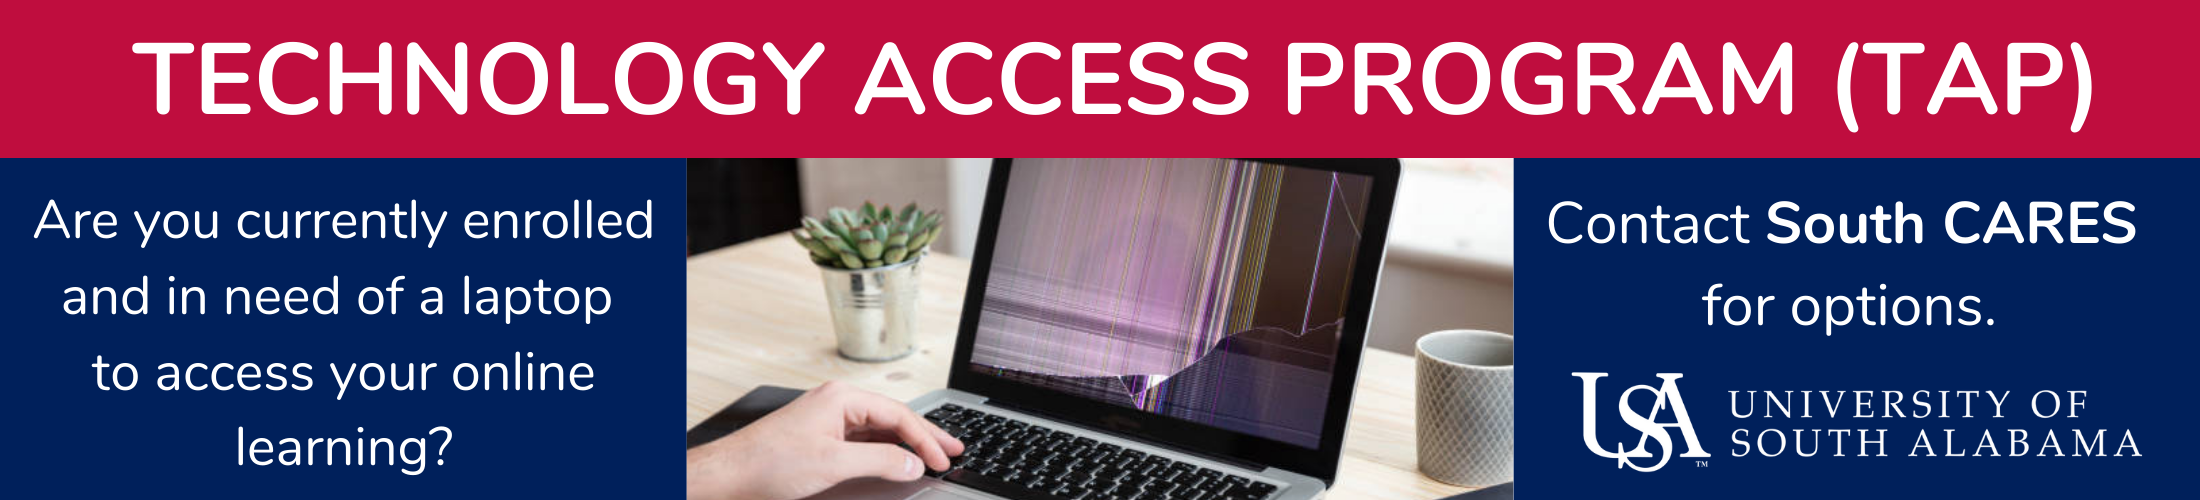 Technology Access Program TAP Are you currently enrolled and in need of a laptop to access your online learning? Contact South Cares for options